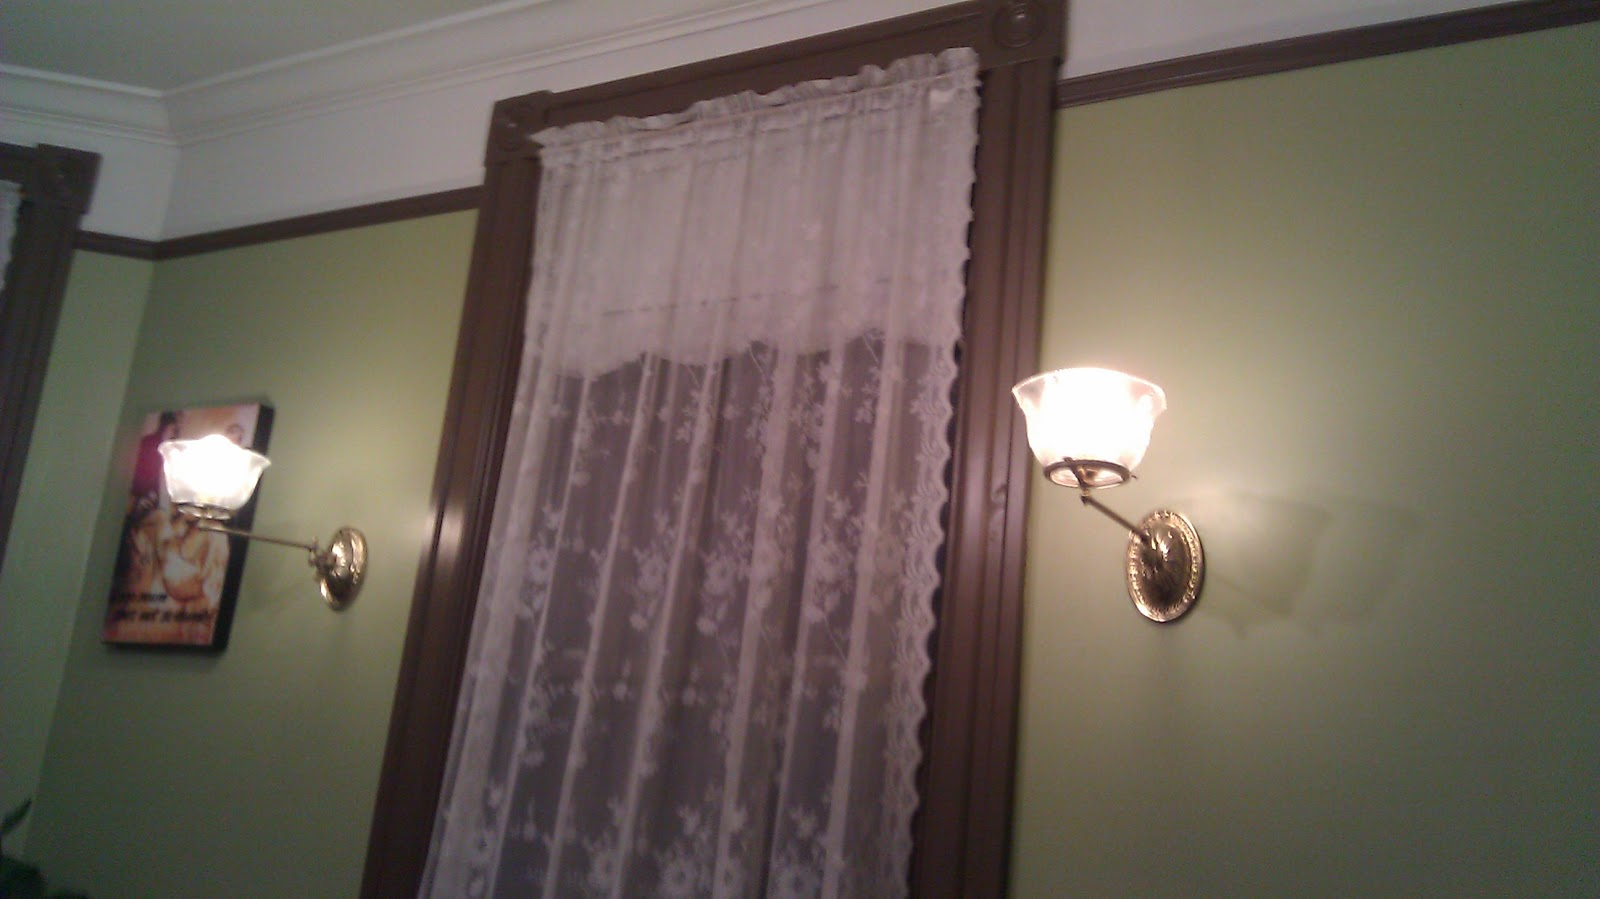 Sconces and light fixture with medallion below